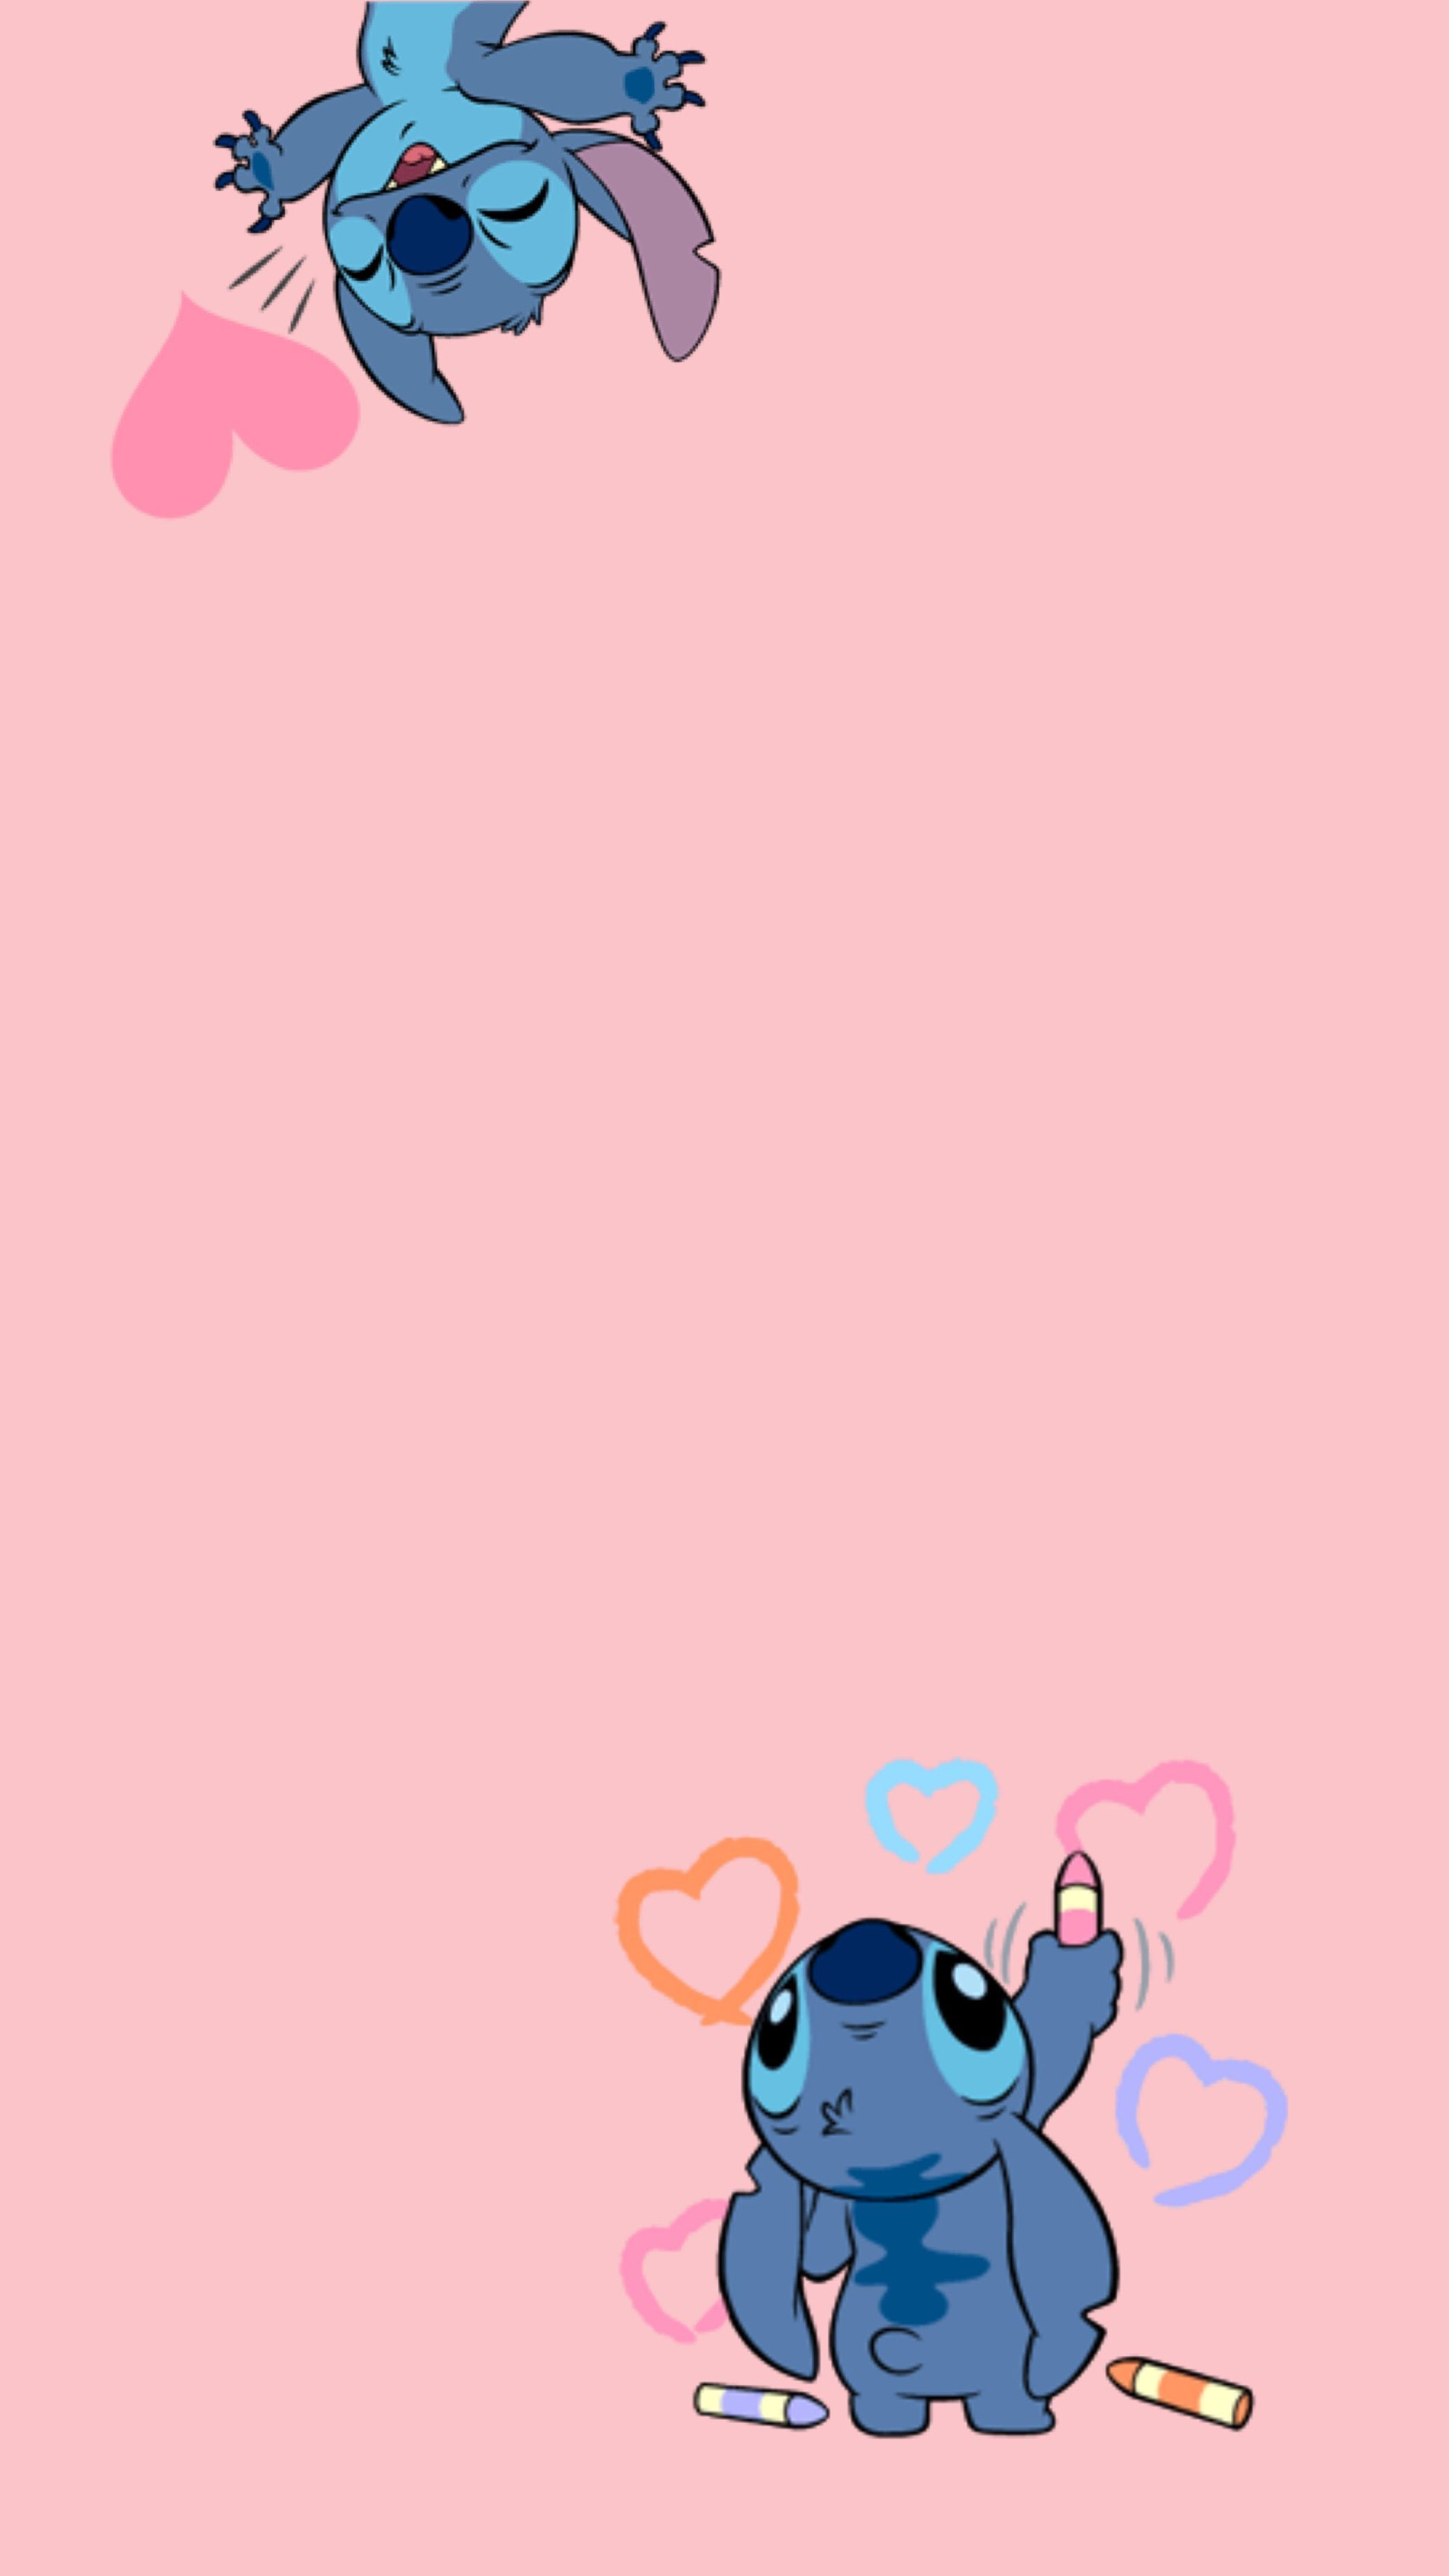 Stitch Wallpaper Cute Disney Wallpaper Iphone Wallpaper Girly Disney Collage Lilo and stitch iphone xr wallpaper